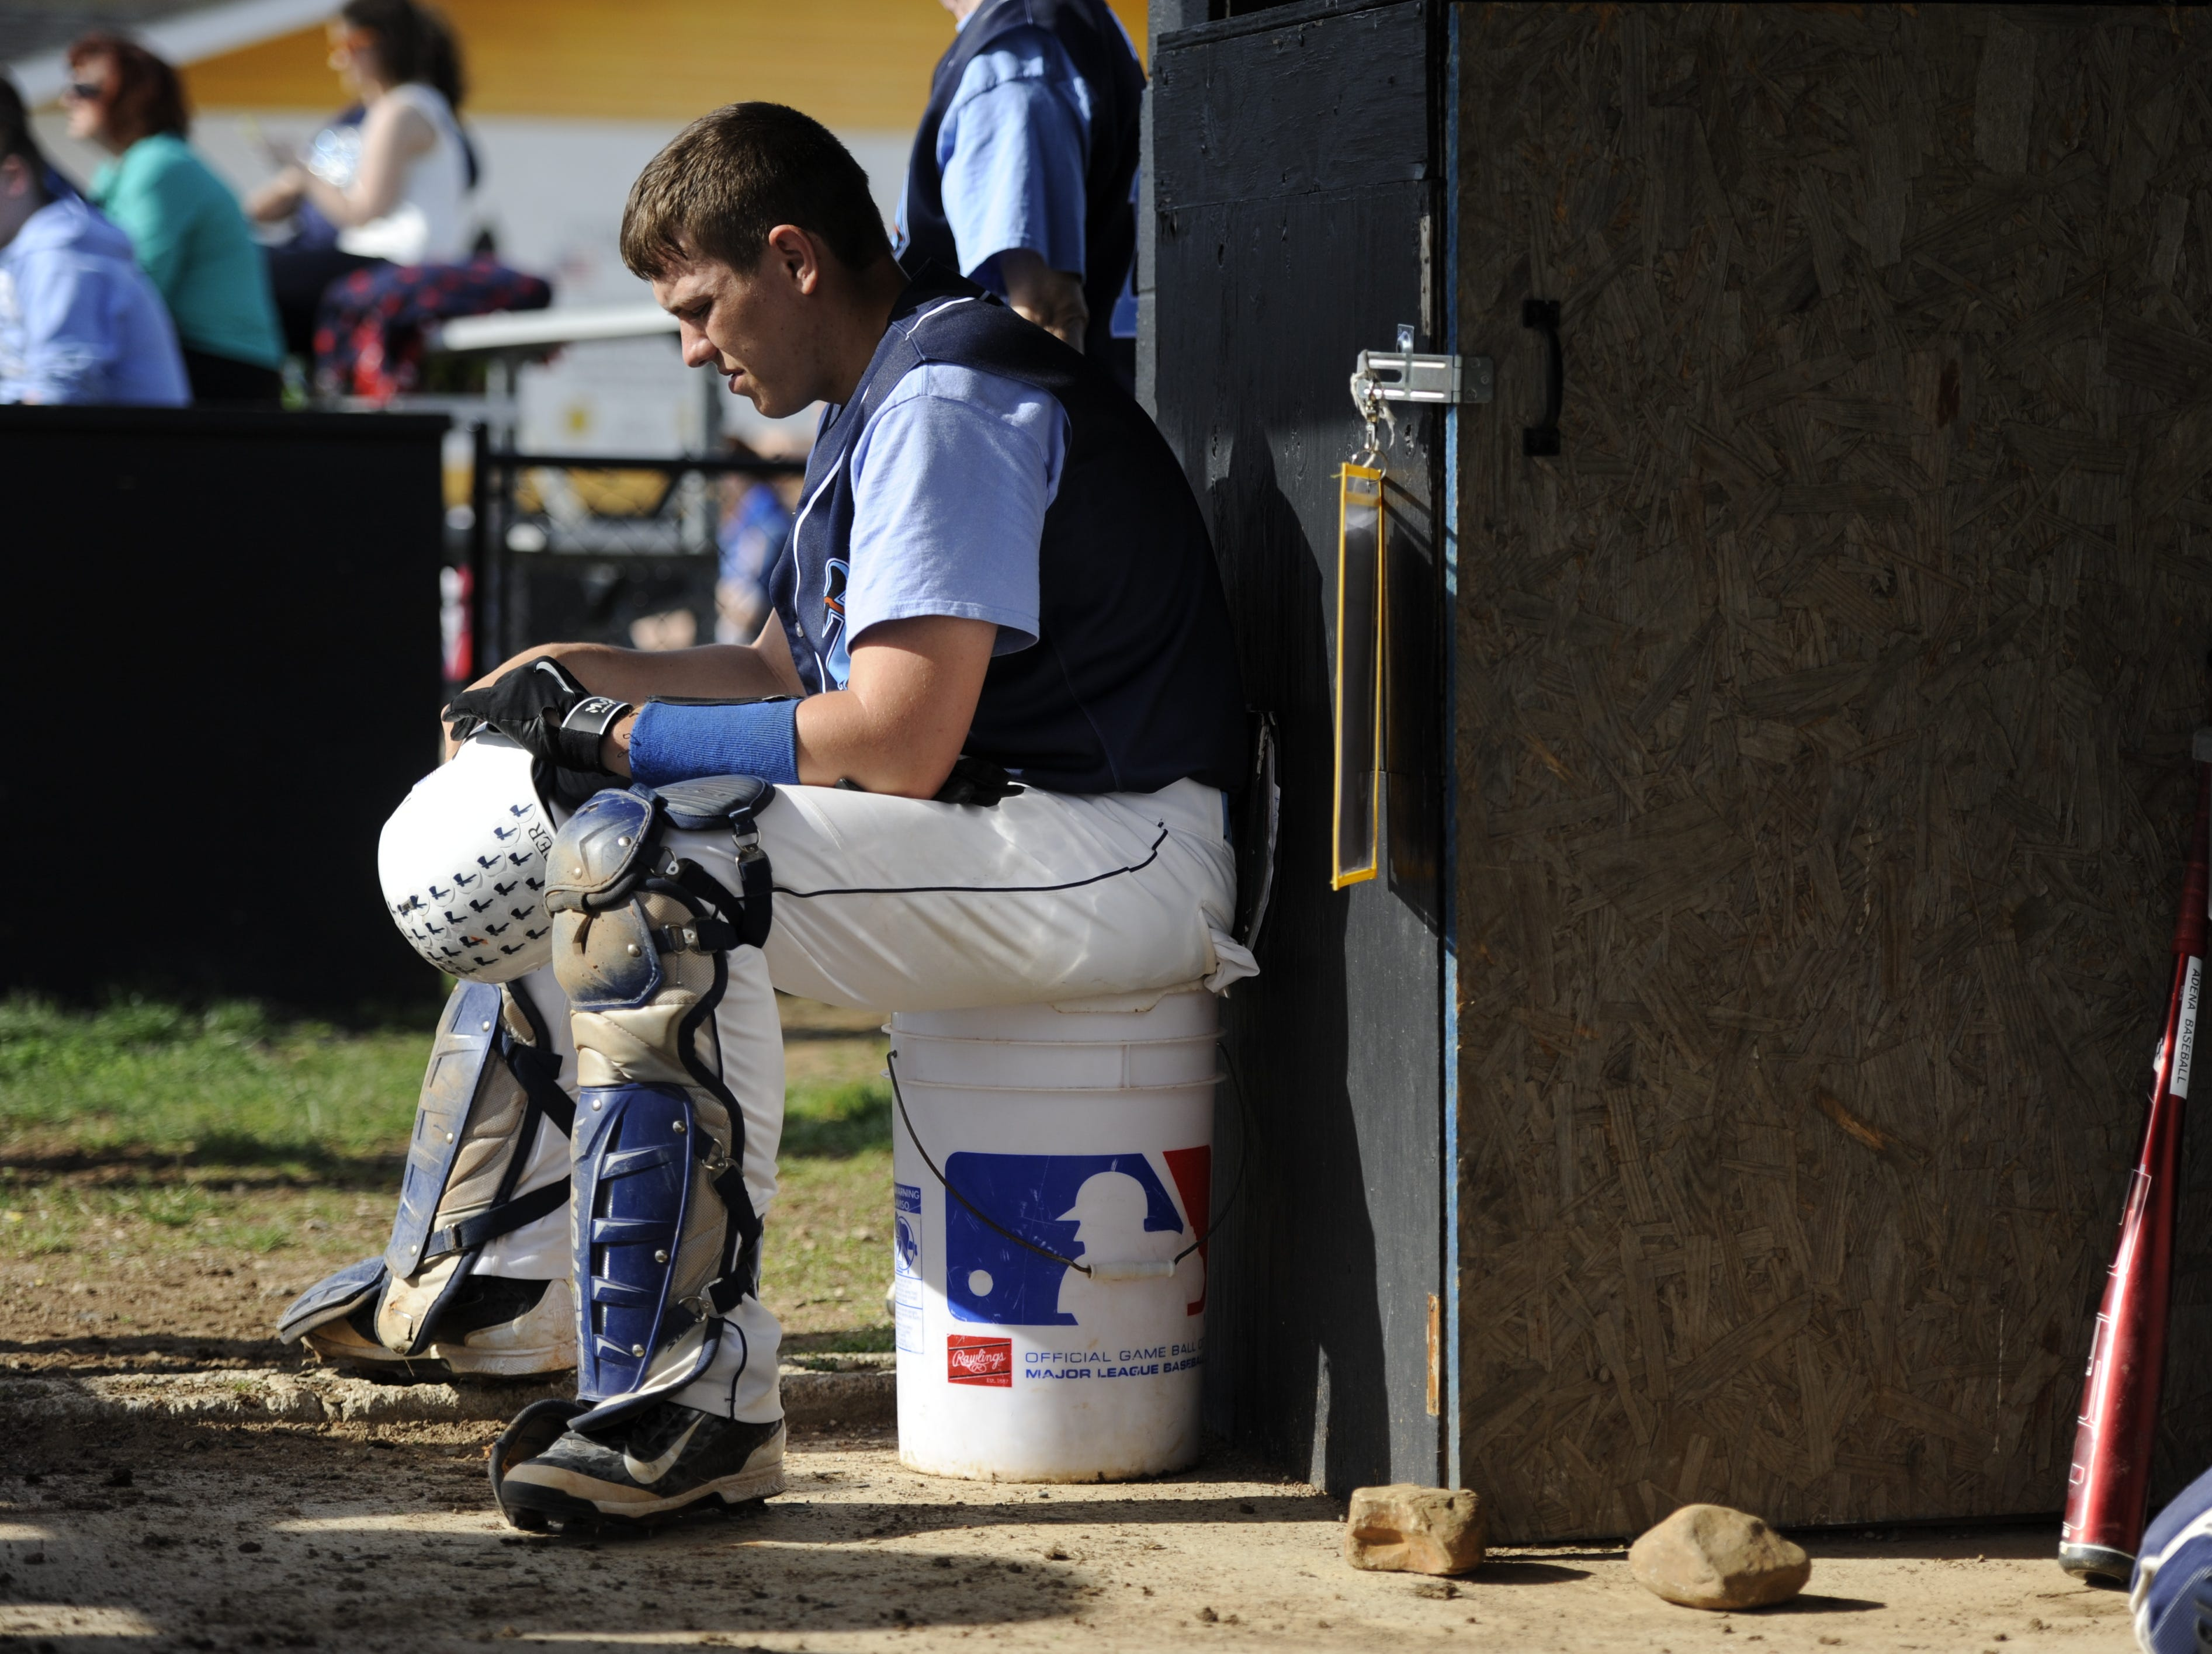 Paint Valley plated against Adena at Paint Valley on Friday. The final score was Adena 4, Paint Valley 2.